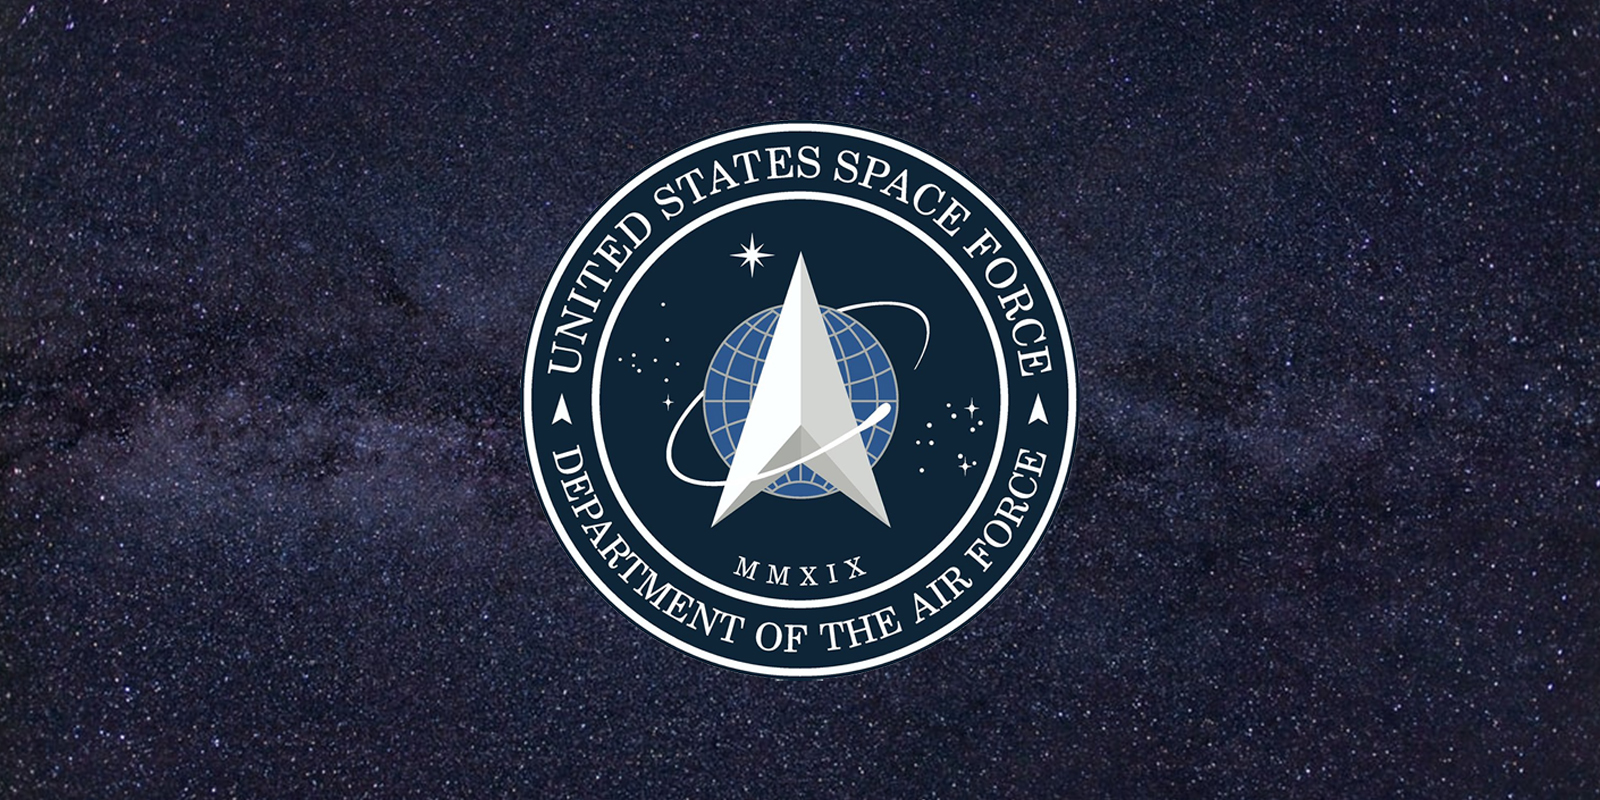 Donald Trump tweets the logo of the United States Space Force